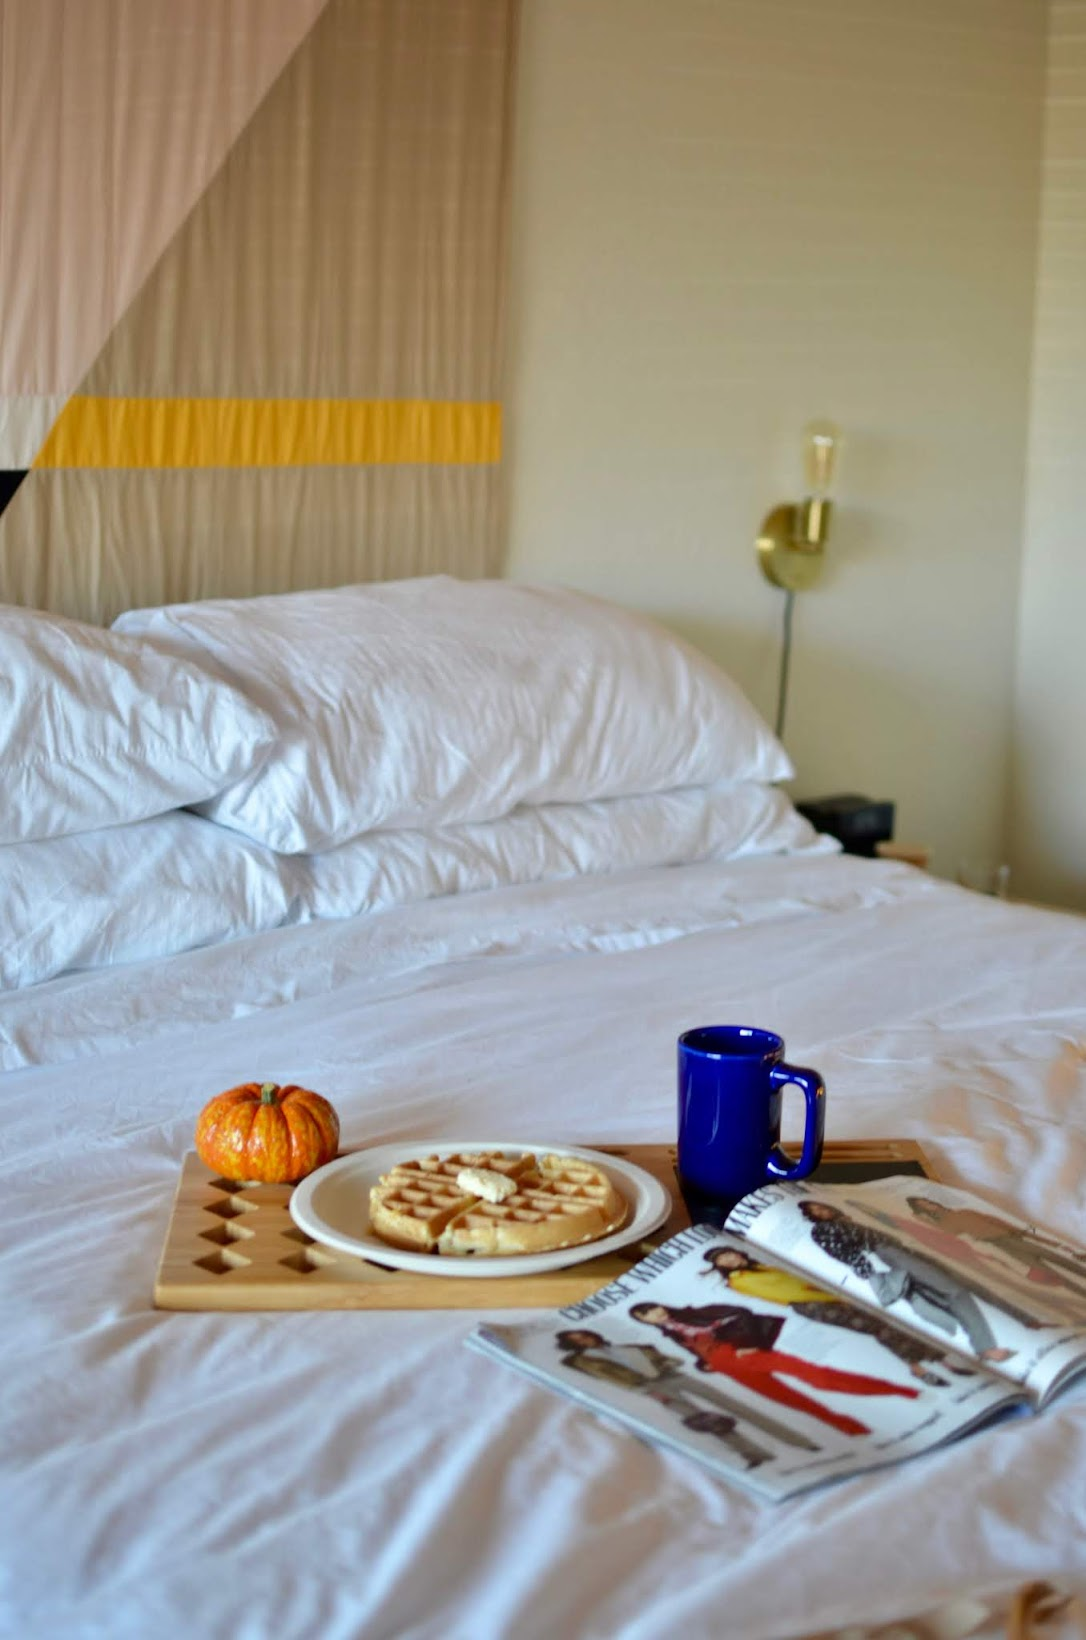 The Sandman Hotel Santa Rosa hotel, chic wine county hotel, retro hotel, breakfast in bed, fall decor, autumn decor